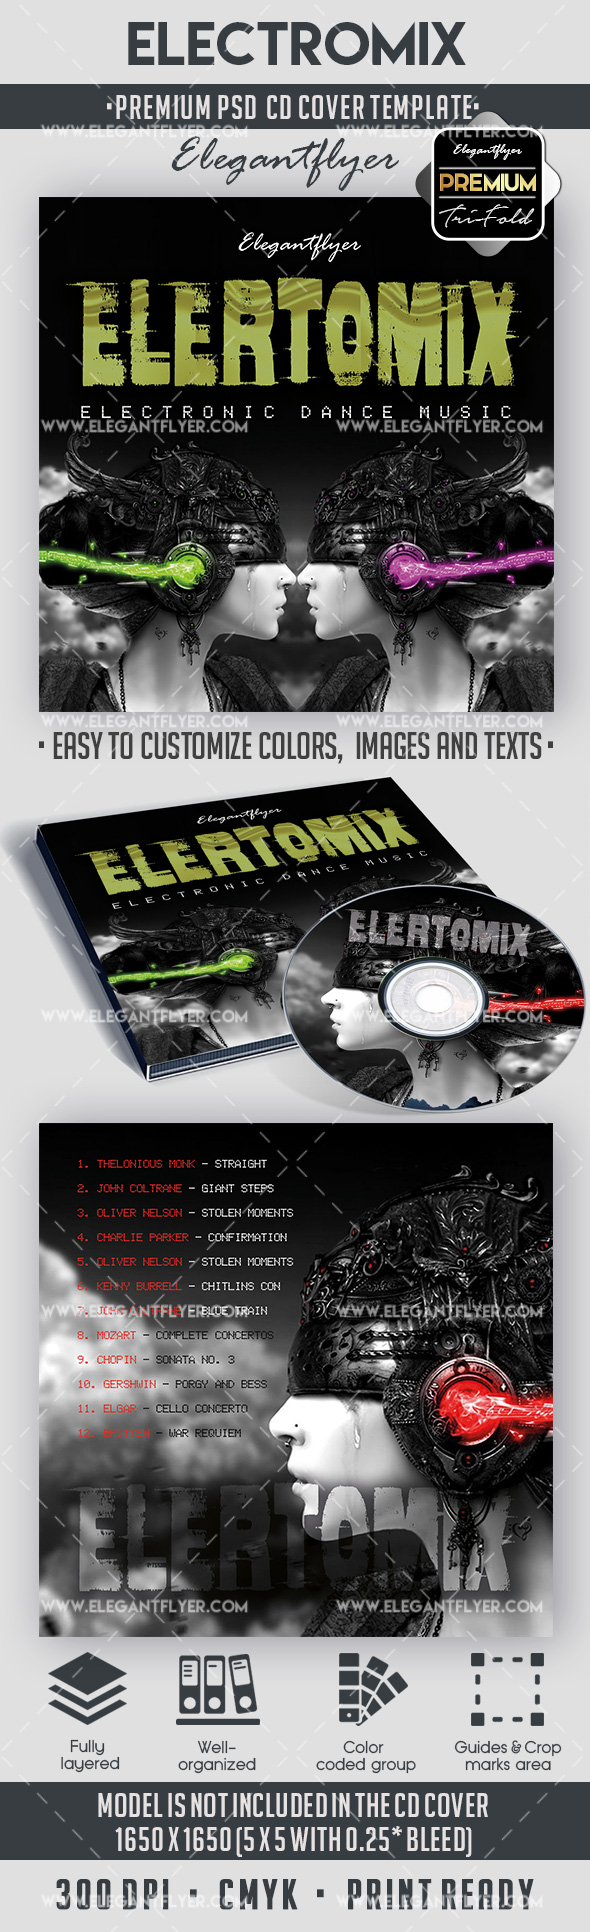 Electromix – Premium CD Cover PSD Template